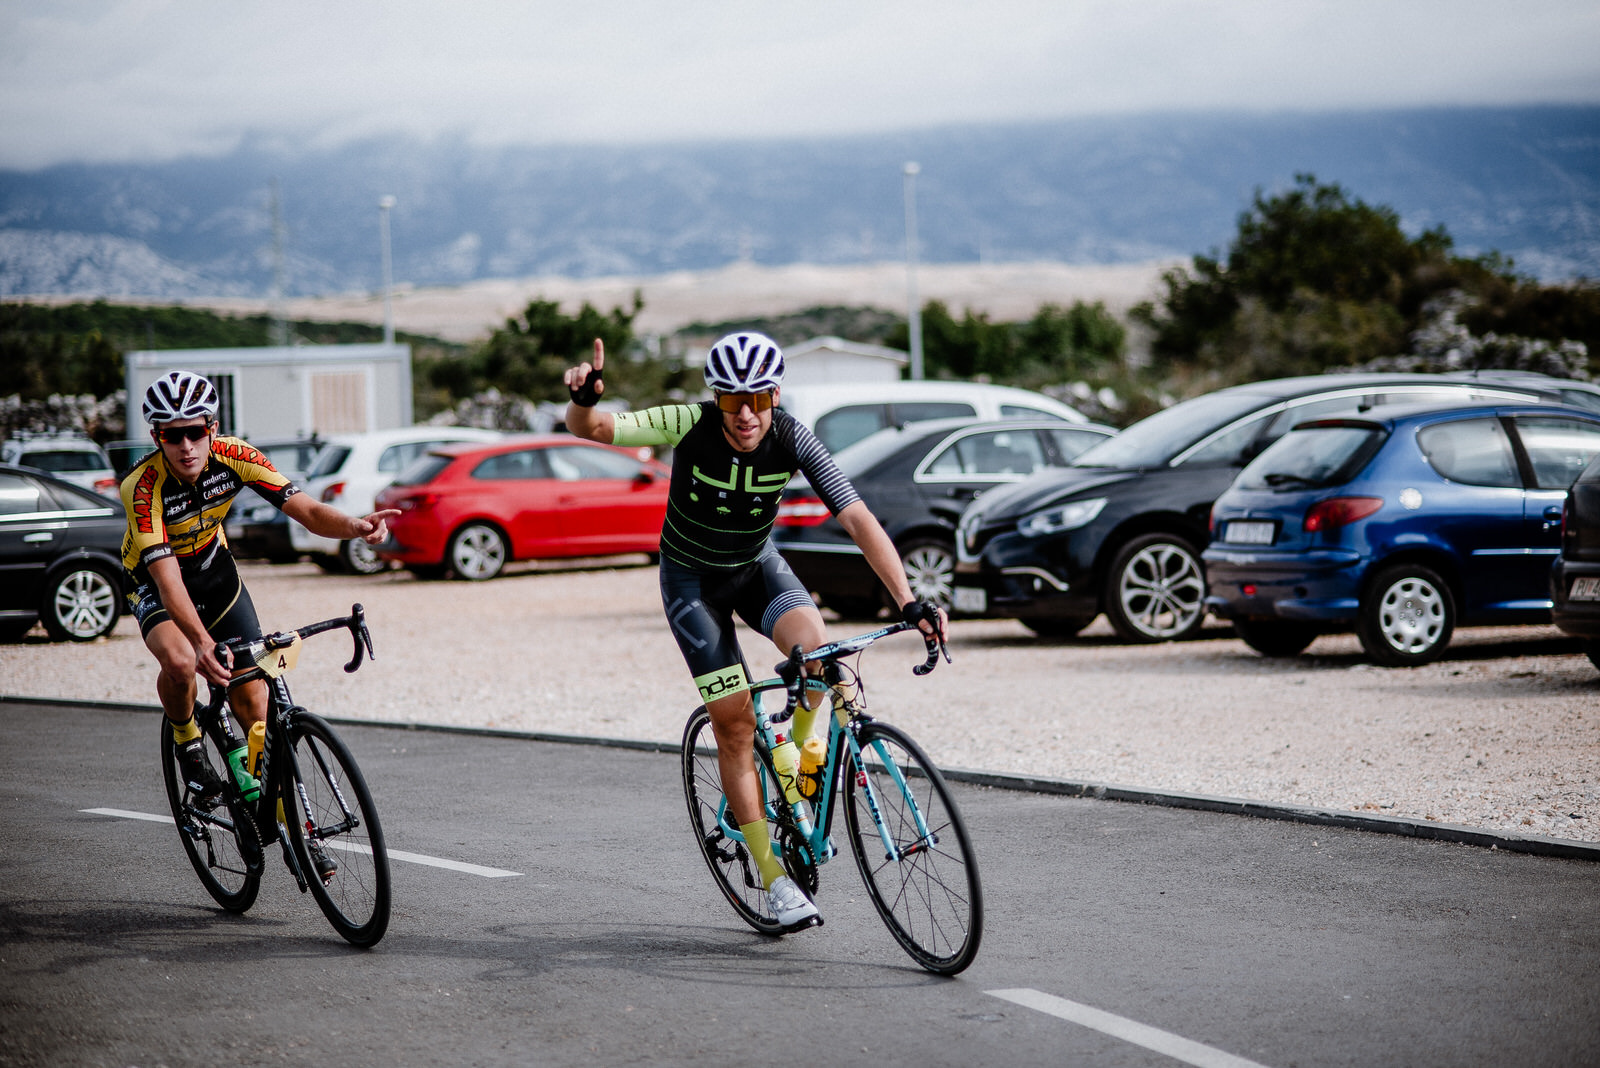 likaclub_Granfondo-Pag-–-Cycling-on-the-Moon_2019-45